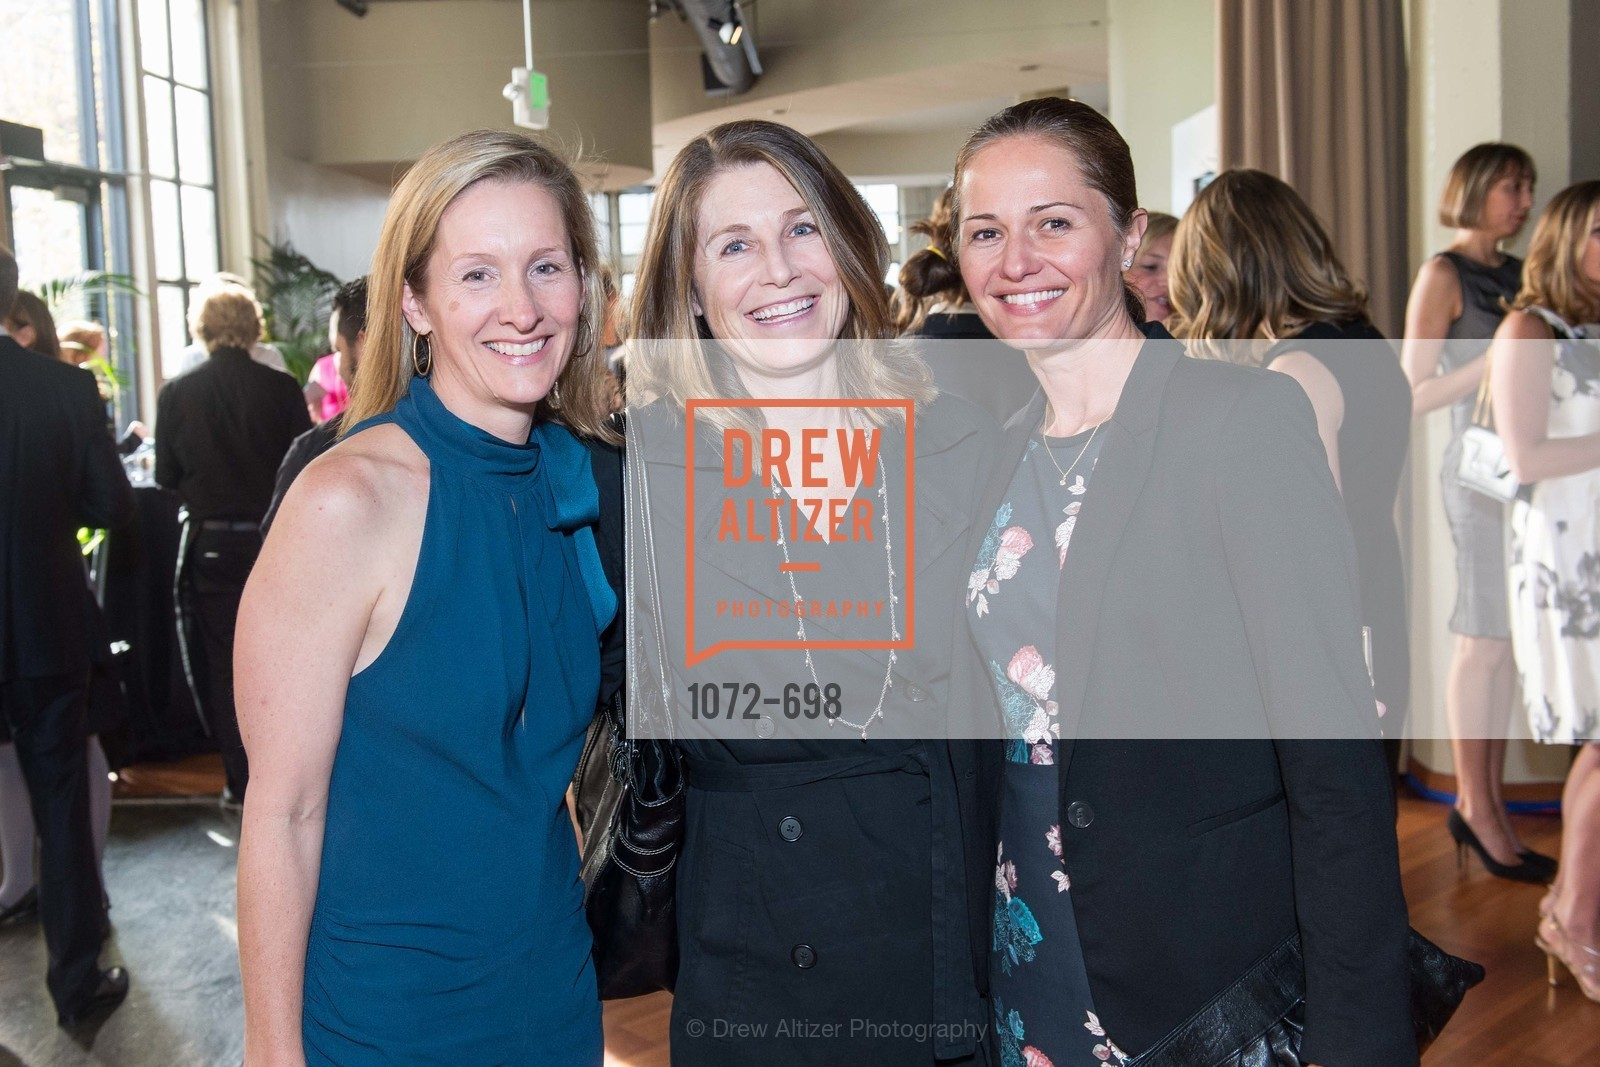 Carol McDonnell, Kirsten Beckwith, Emilia Buchanan, EWG's 6th Annual Earth Dinner, US, May 6th, 2015,Drew Altizer, Drew Altizer Photography, full-service event agency, private events, San Francisco photographer, photographer California